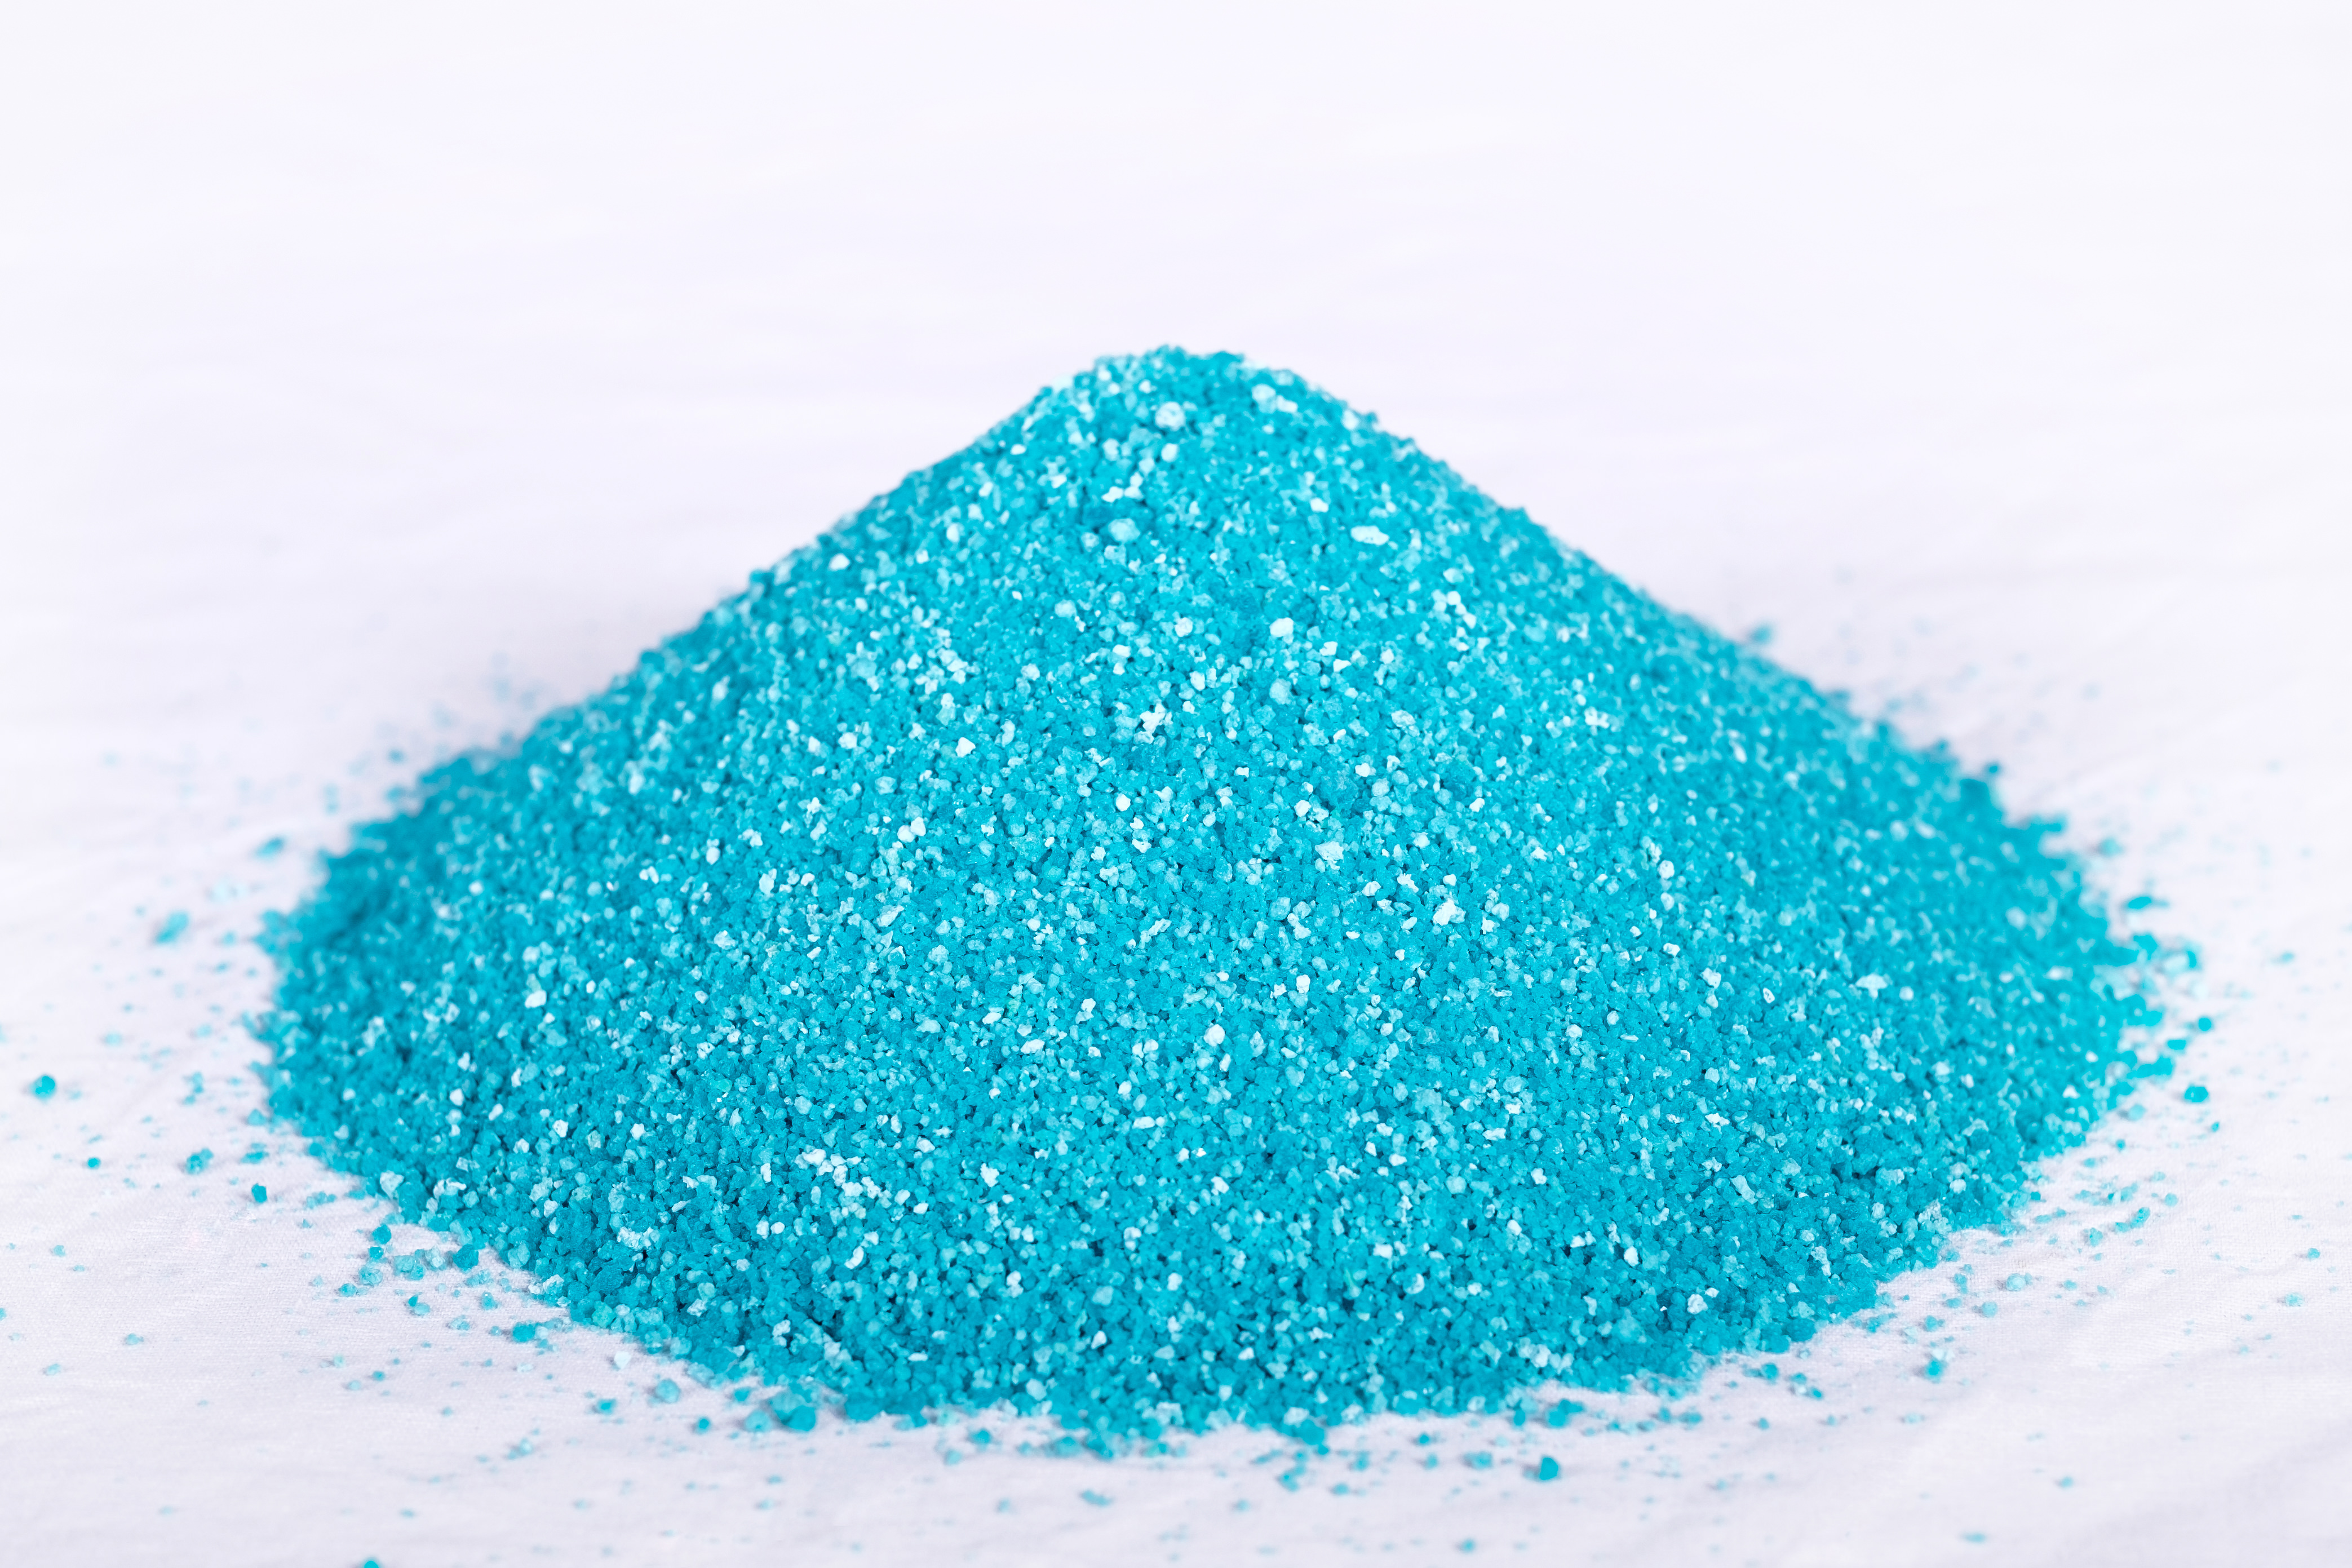 Image: Pure nickel sulphate